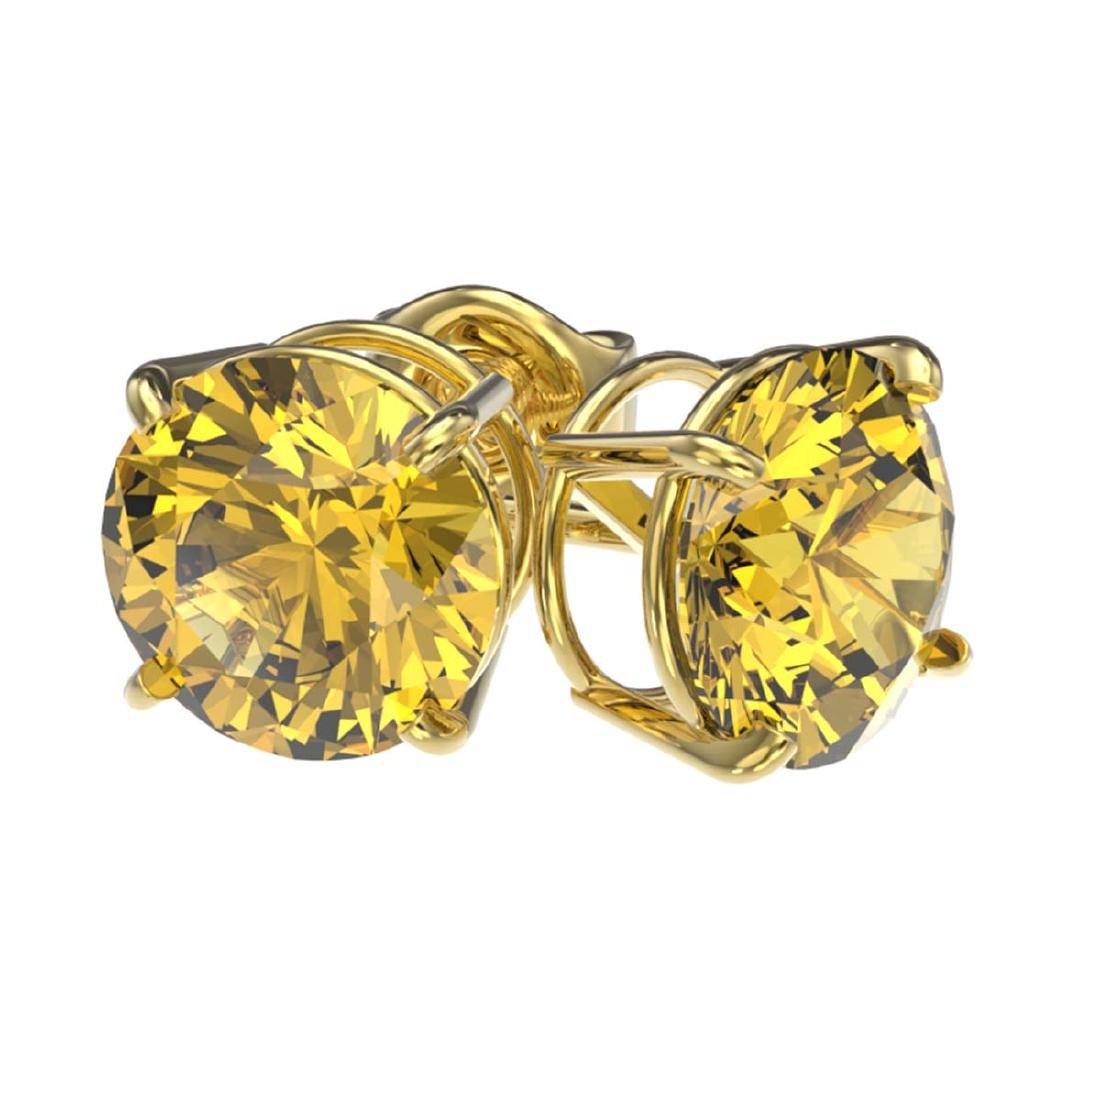 2 ctw Intense Yellow Diamond Stud Earrings 10K Yellow - 3